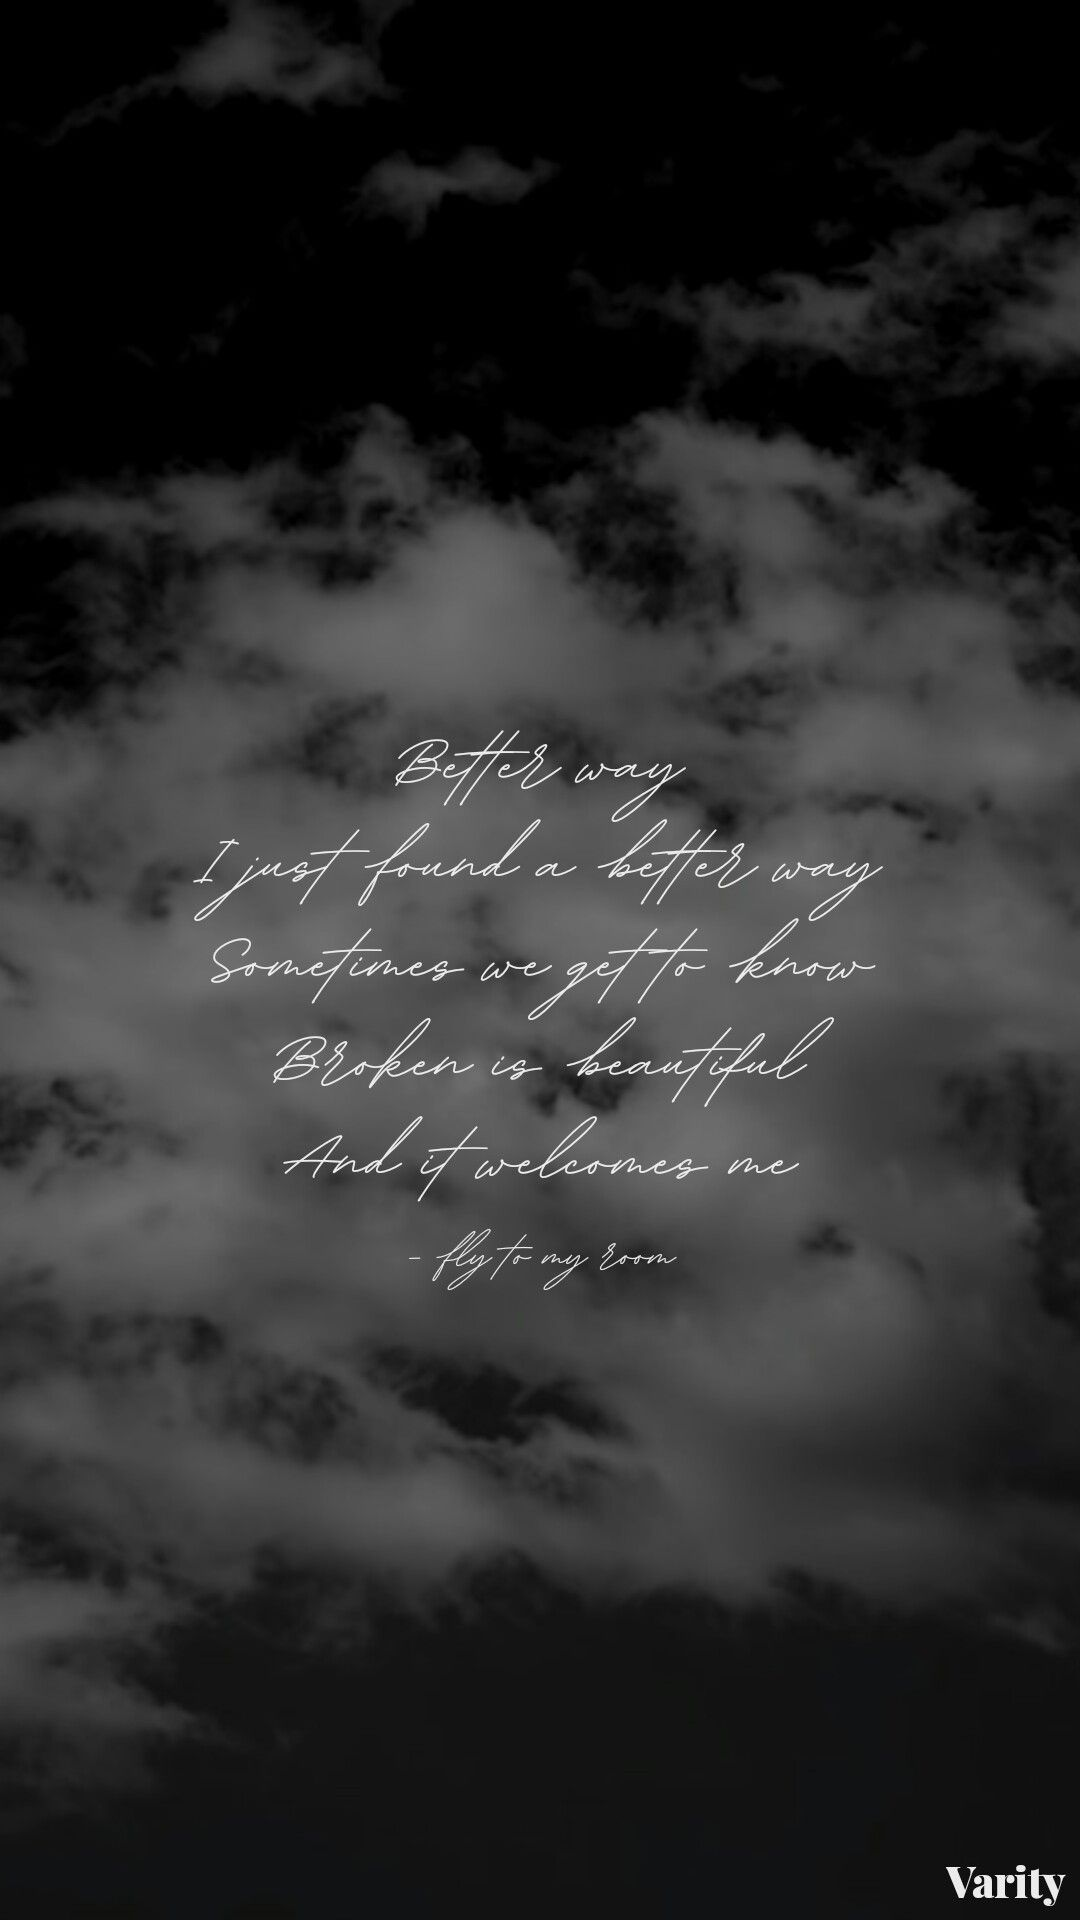 Fly To My Room Be By Bts Aesthetic Song Lyrics Wallpapers Lockscreens In 2021 Song Lyrics Wallpaper Bts Song Lyrics Bts Lyric Bts quotes wallpaper black and white